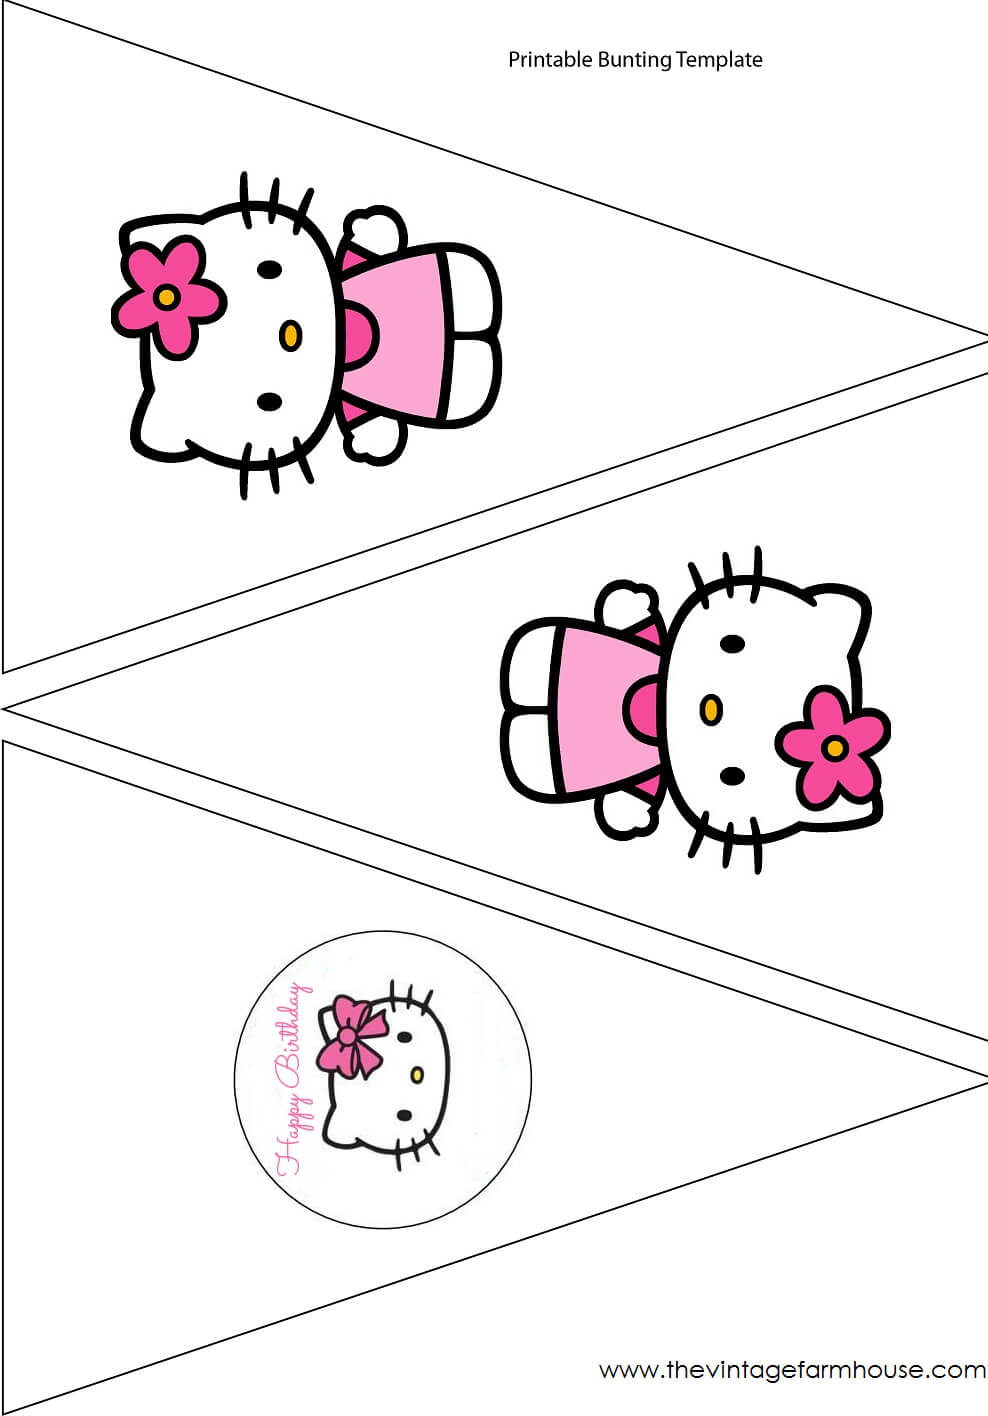 The Vintage Farmhouse: Hello Kitty Party & Free Printables intended for Hello Kitty Birthday Banner Template Free